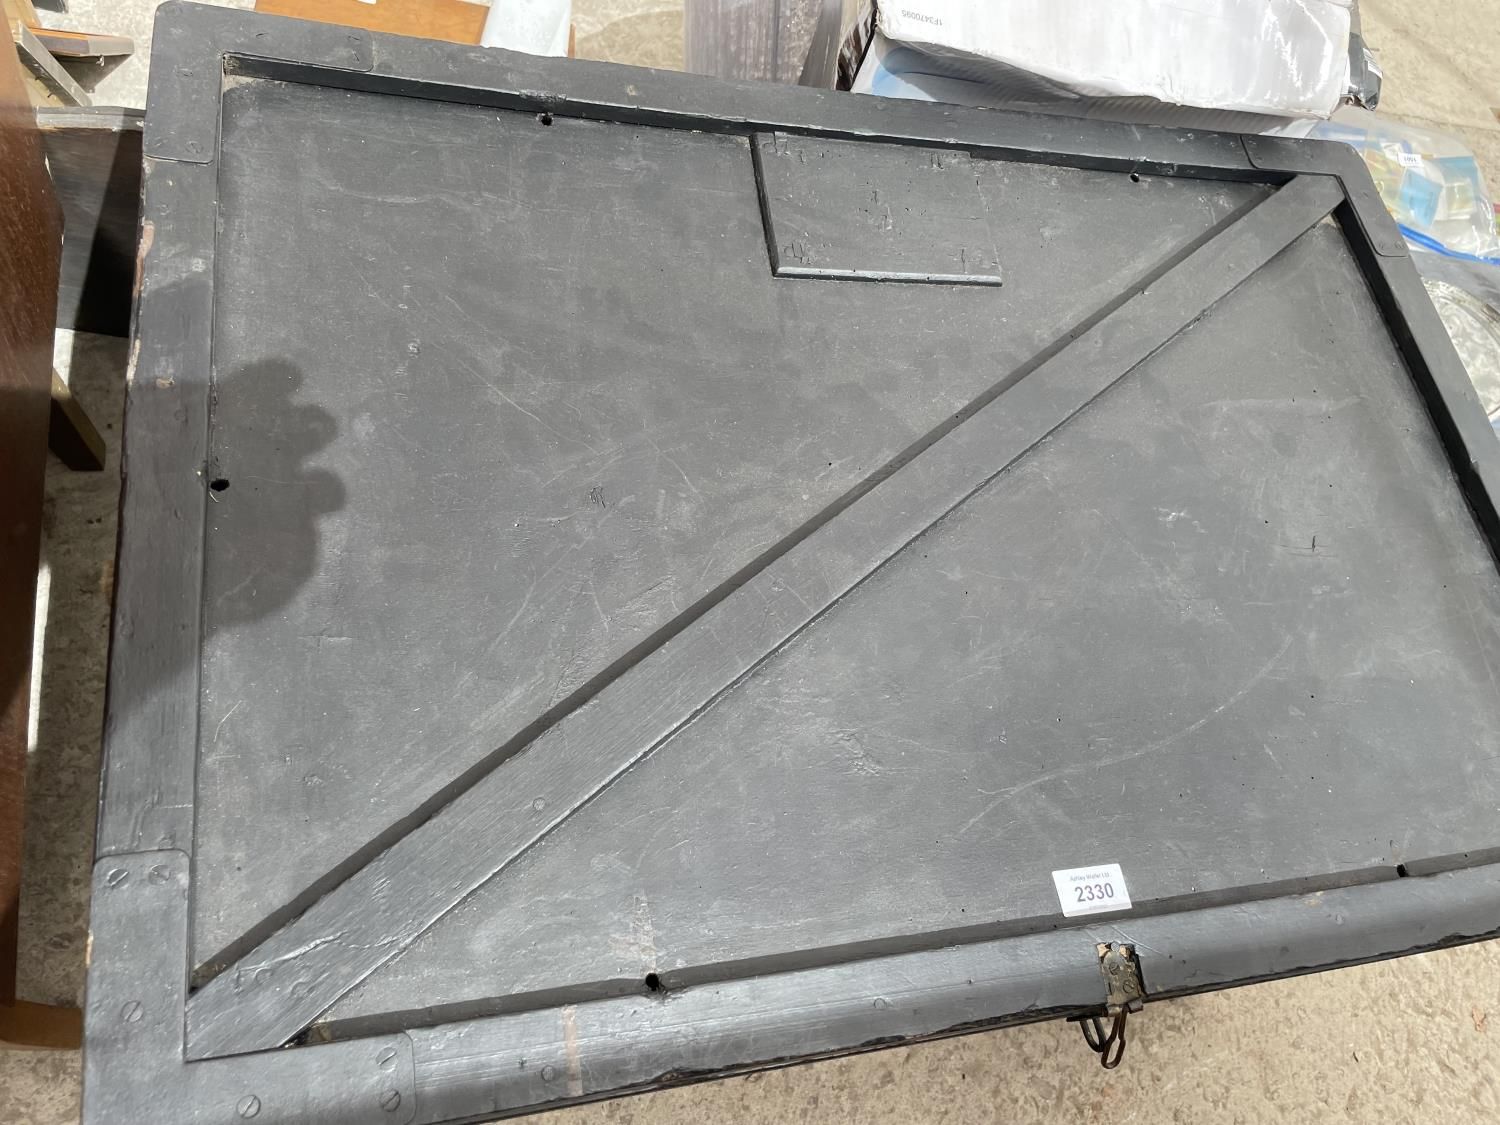 A BLACK STAINED BLANKET CHEST WITH ROPE CARRYING HANDLES, 32' WIDE - Image 2 of 5